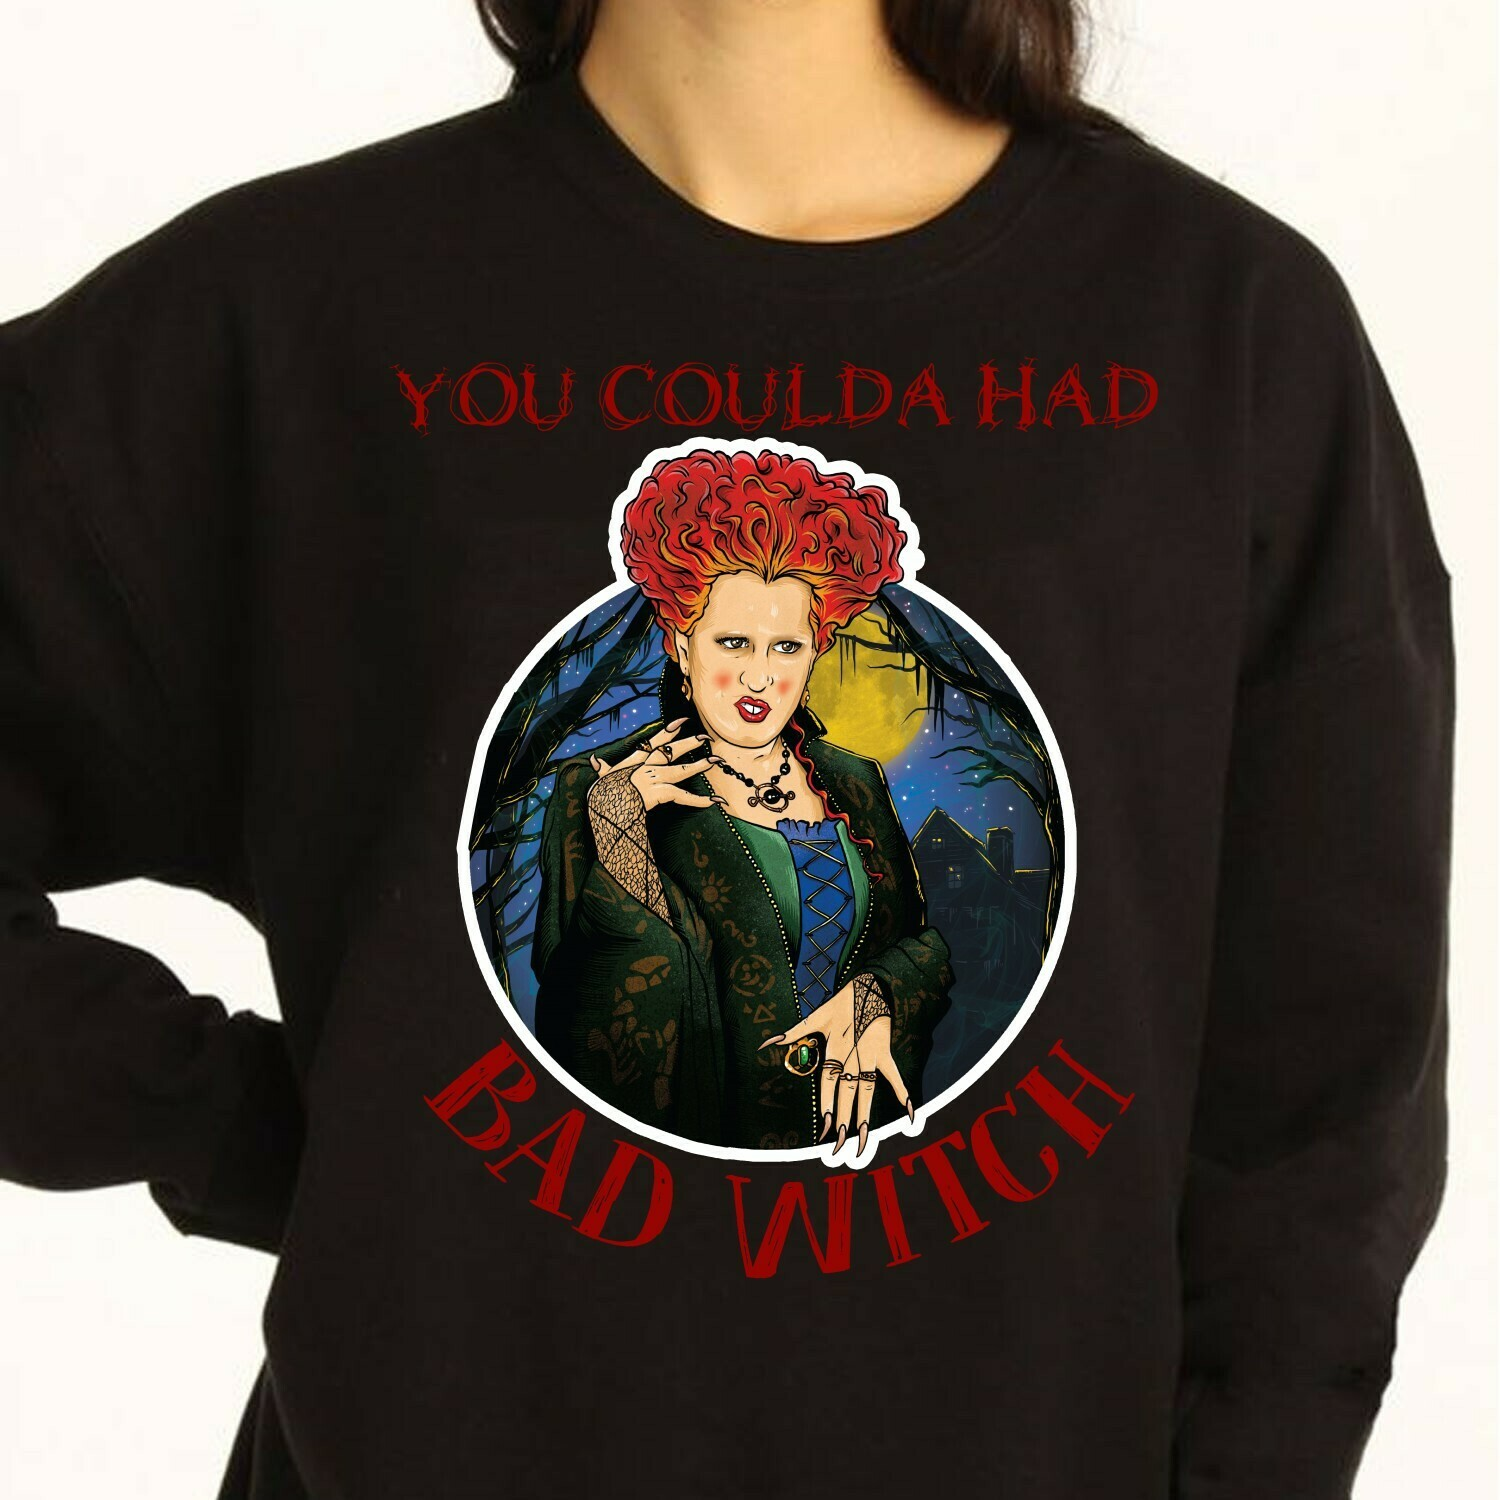 You Coulda Had Bad Witch Sanderson Sisters Happy Halloween Hocus Pocus Bad Girls Have More Fun Walt Disney World Vacation T-Shirt Long Sleeve Sweatshirt Hoodie Jolly Family Gifts